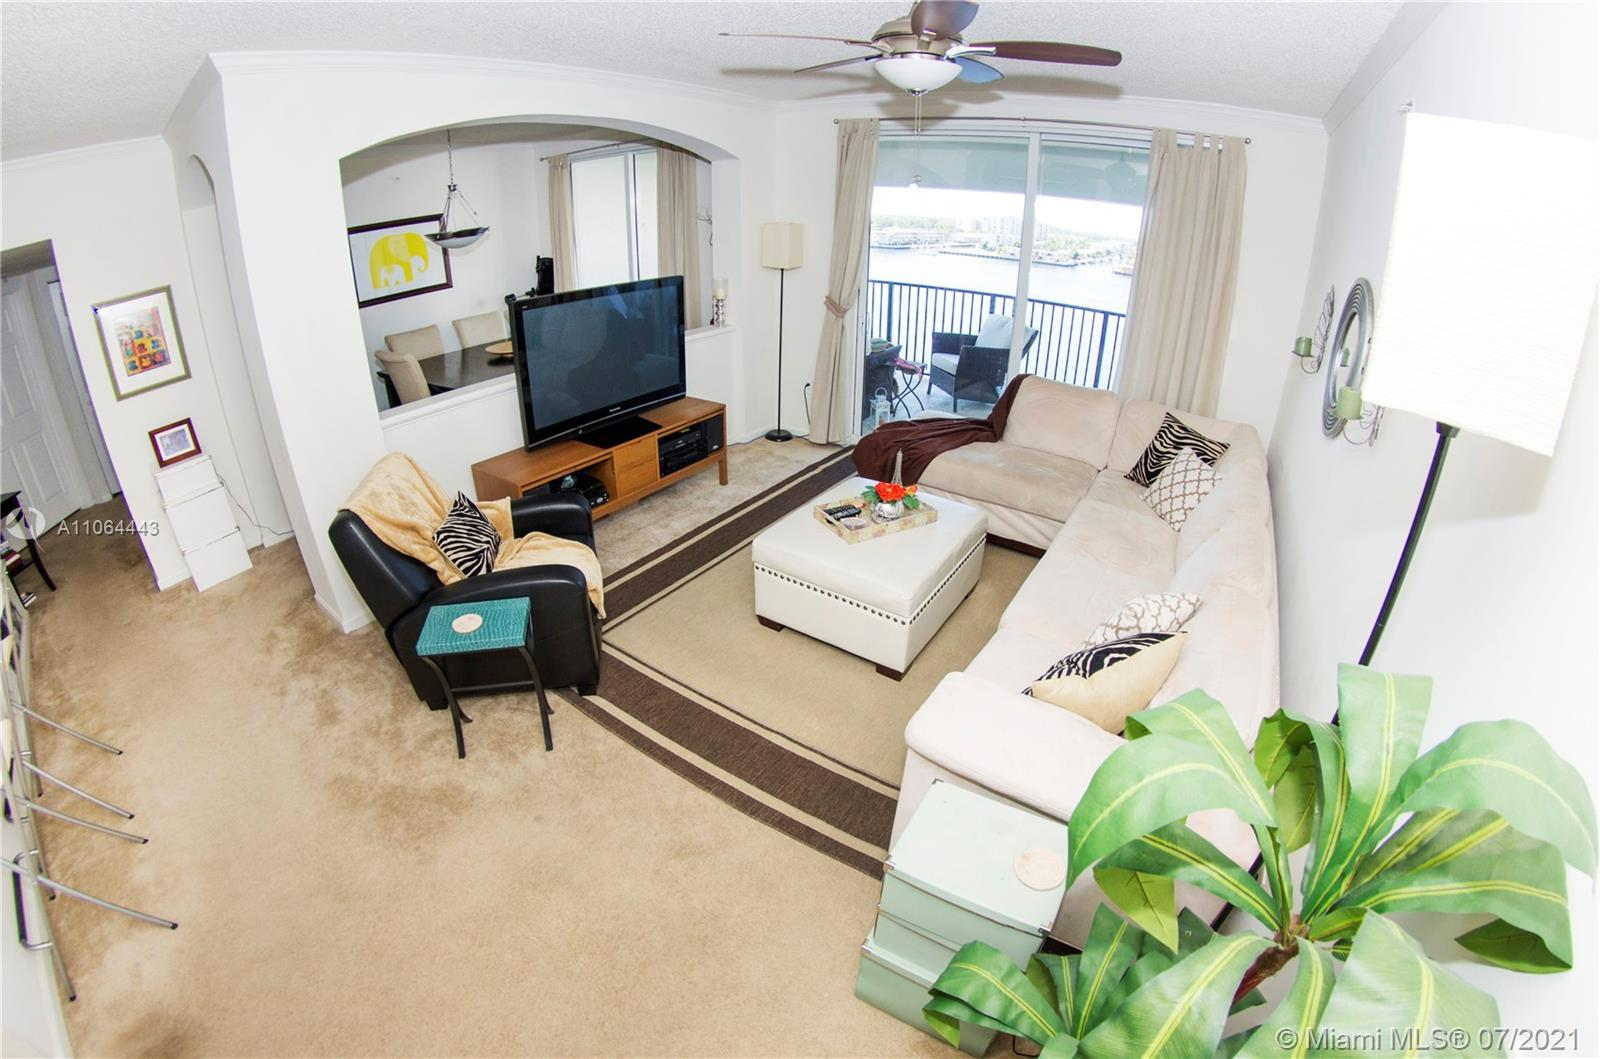 lower penthouse with direct bay view, largest 3 bedroom 2 bath palladio floor plan, 2 parking spaces